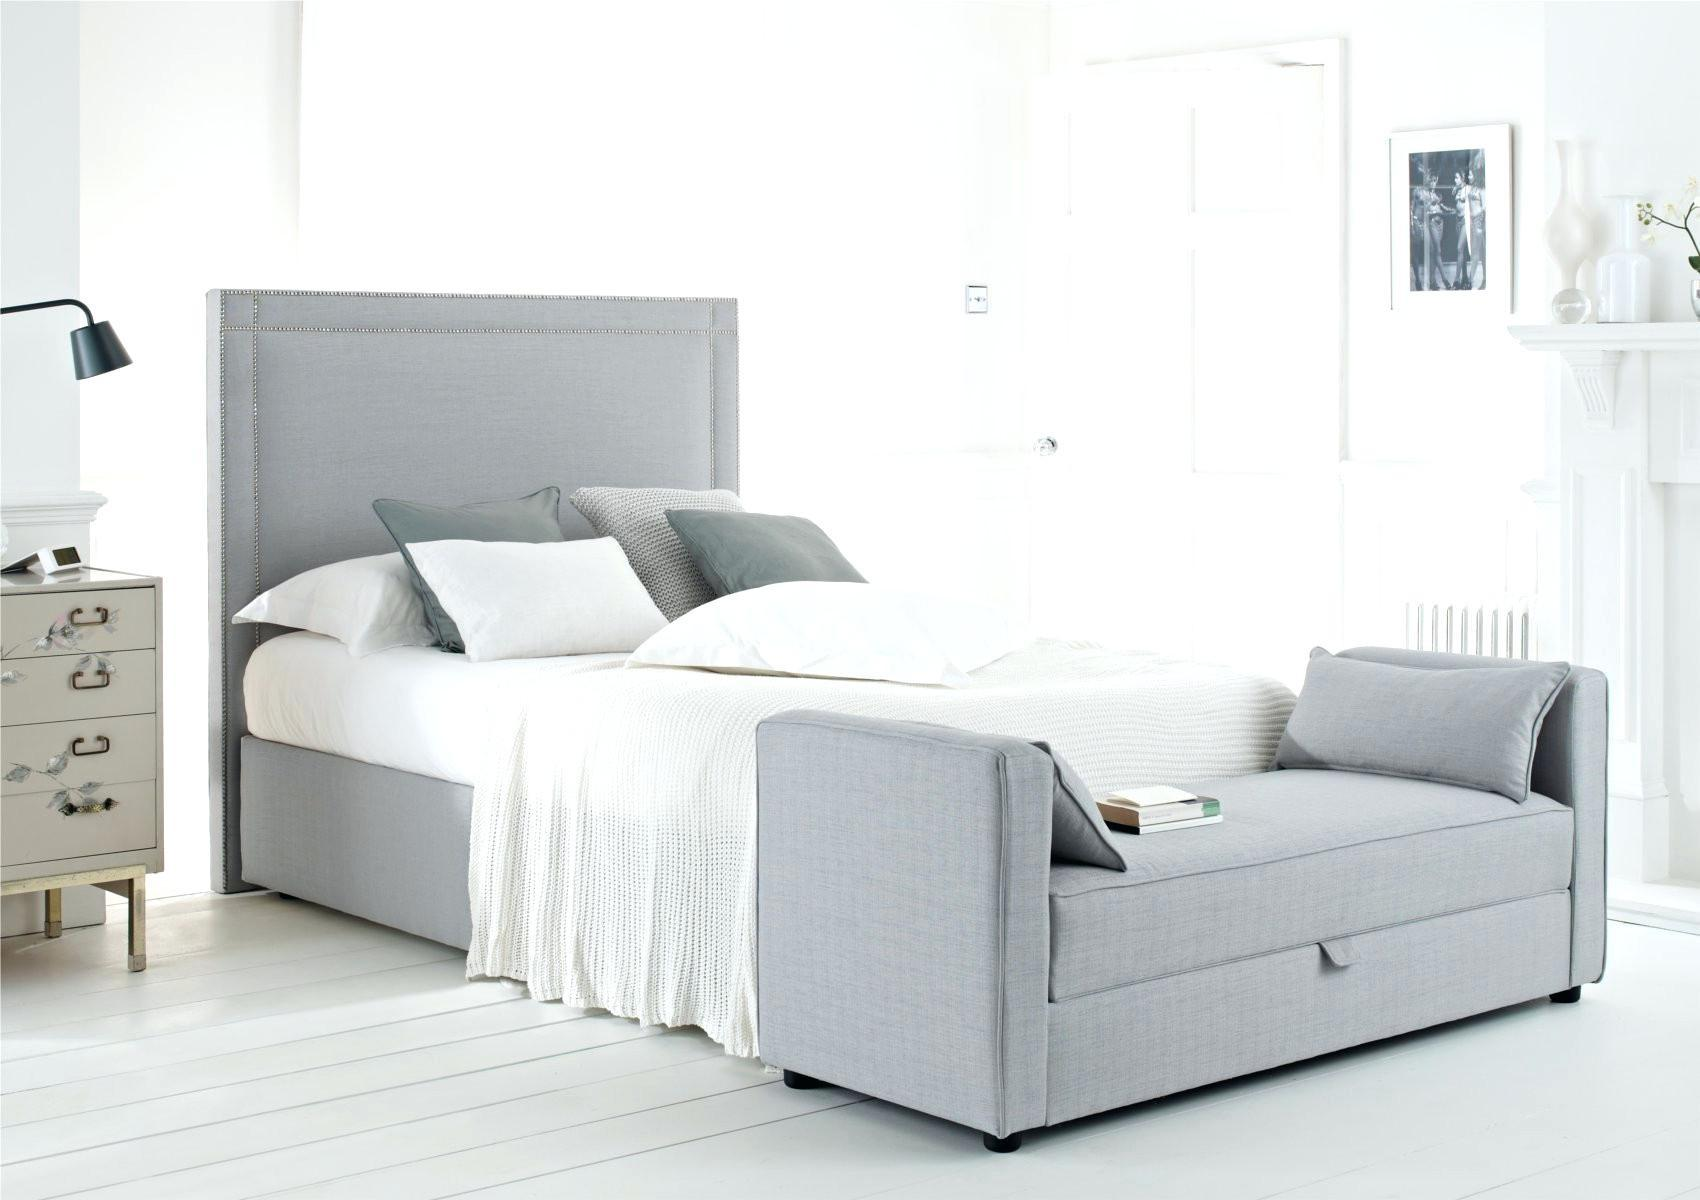 Furniture Long White Headboard Tufted Style Matched